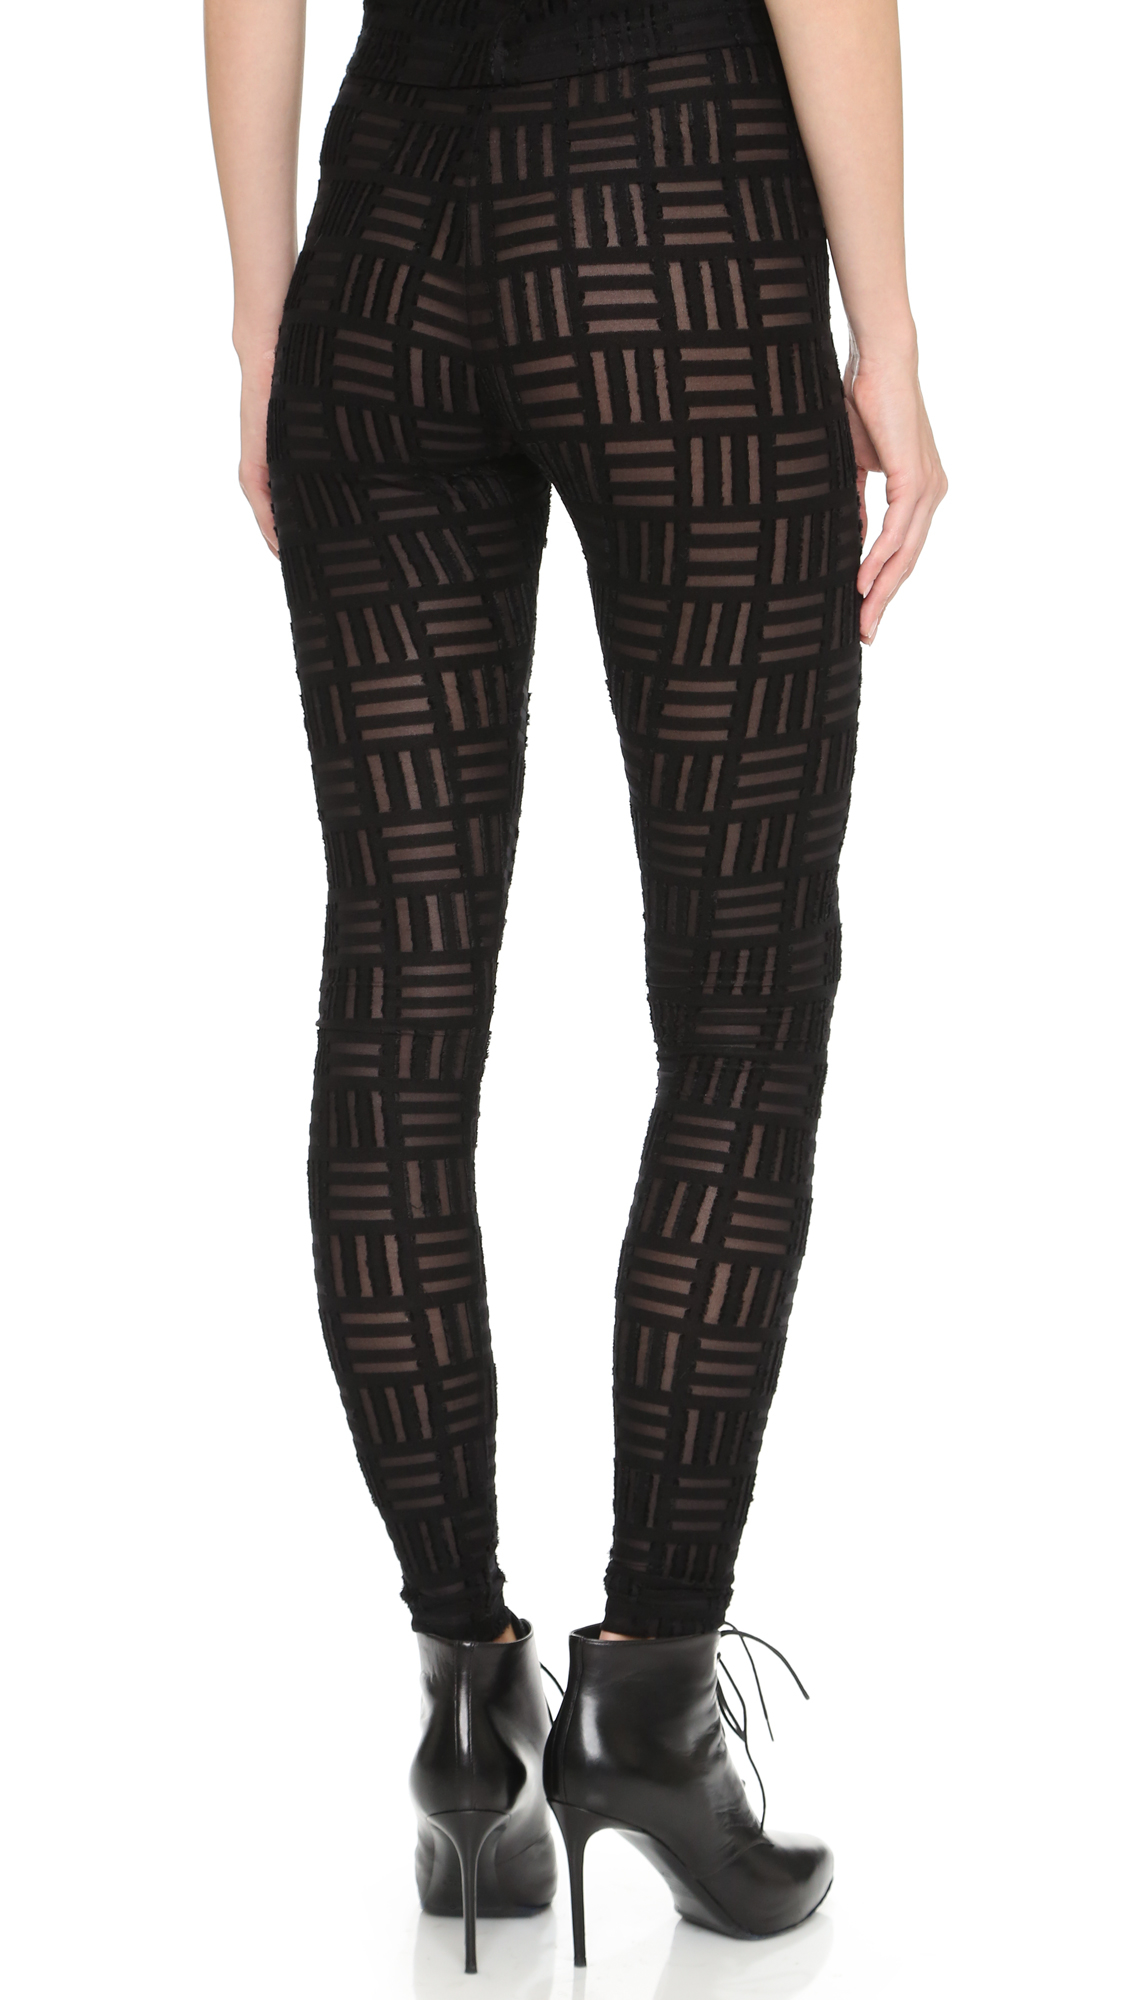 Stay cozy for a night in with fleece-lined leggings or go out on the town in faux leather leggings for women. Shop online today & get free shipping over $50! Related Searches womens wide-leg pants. active tops. womens capri active leggings. active leggings. colorblock leggings. capri leggings.